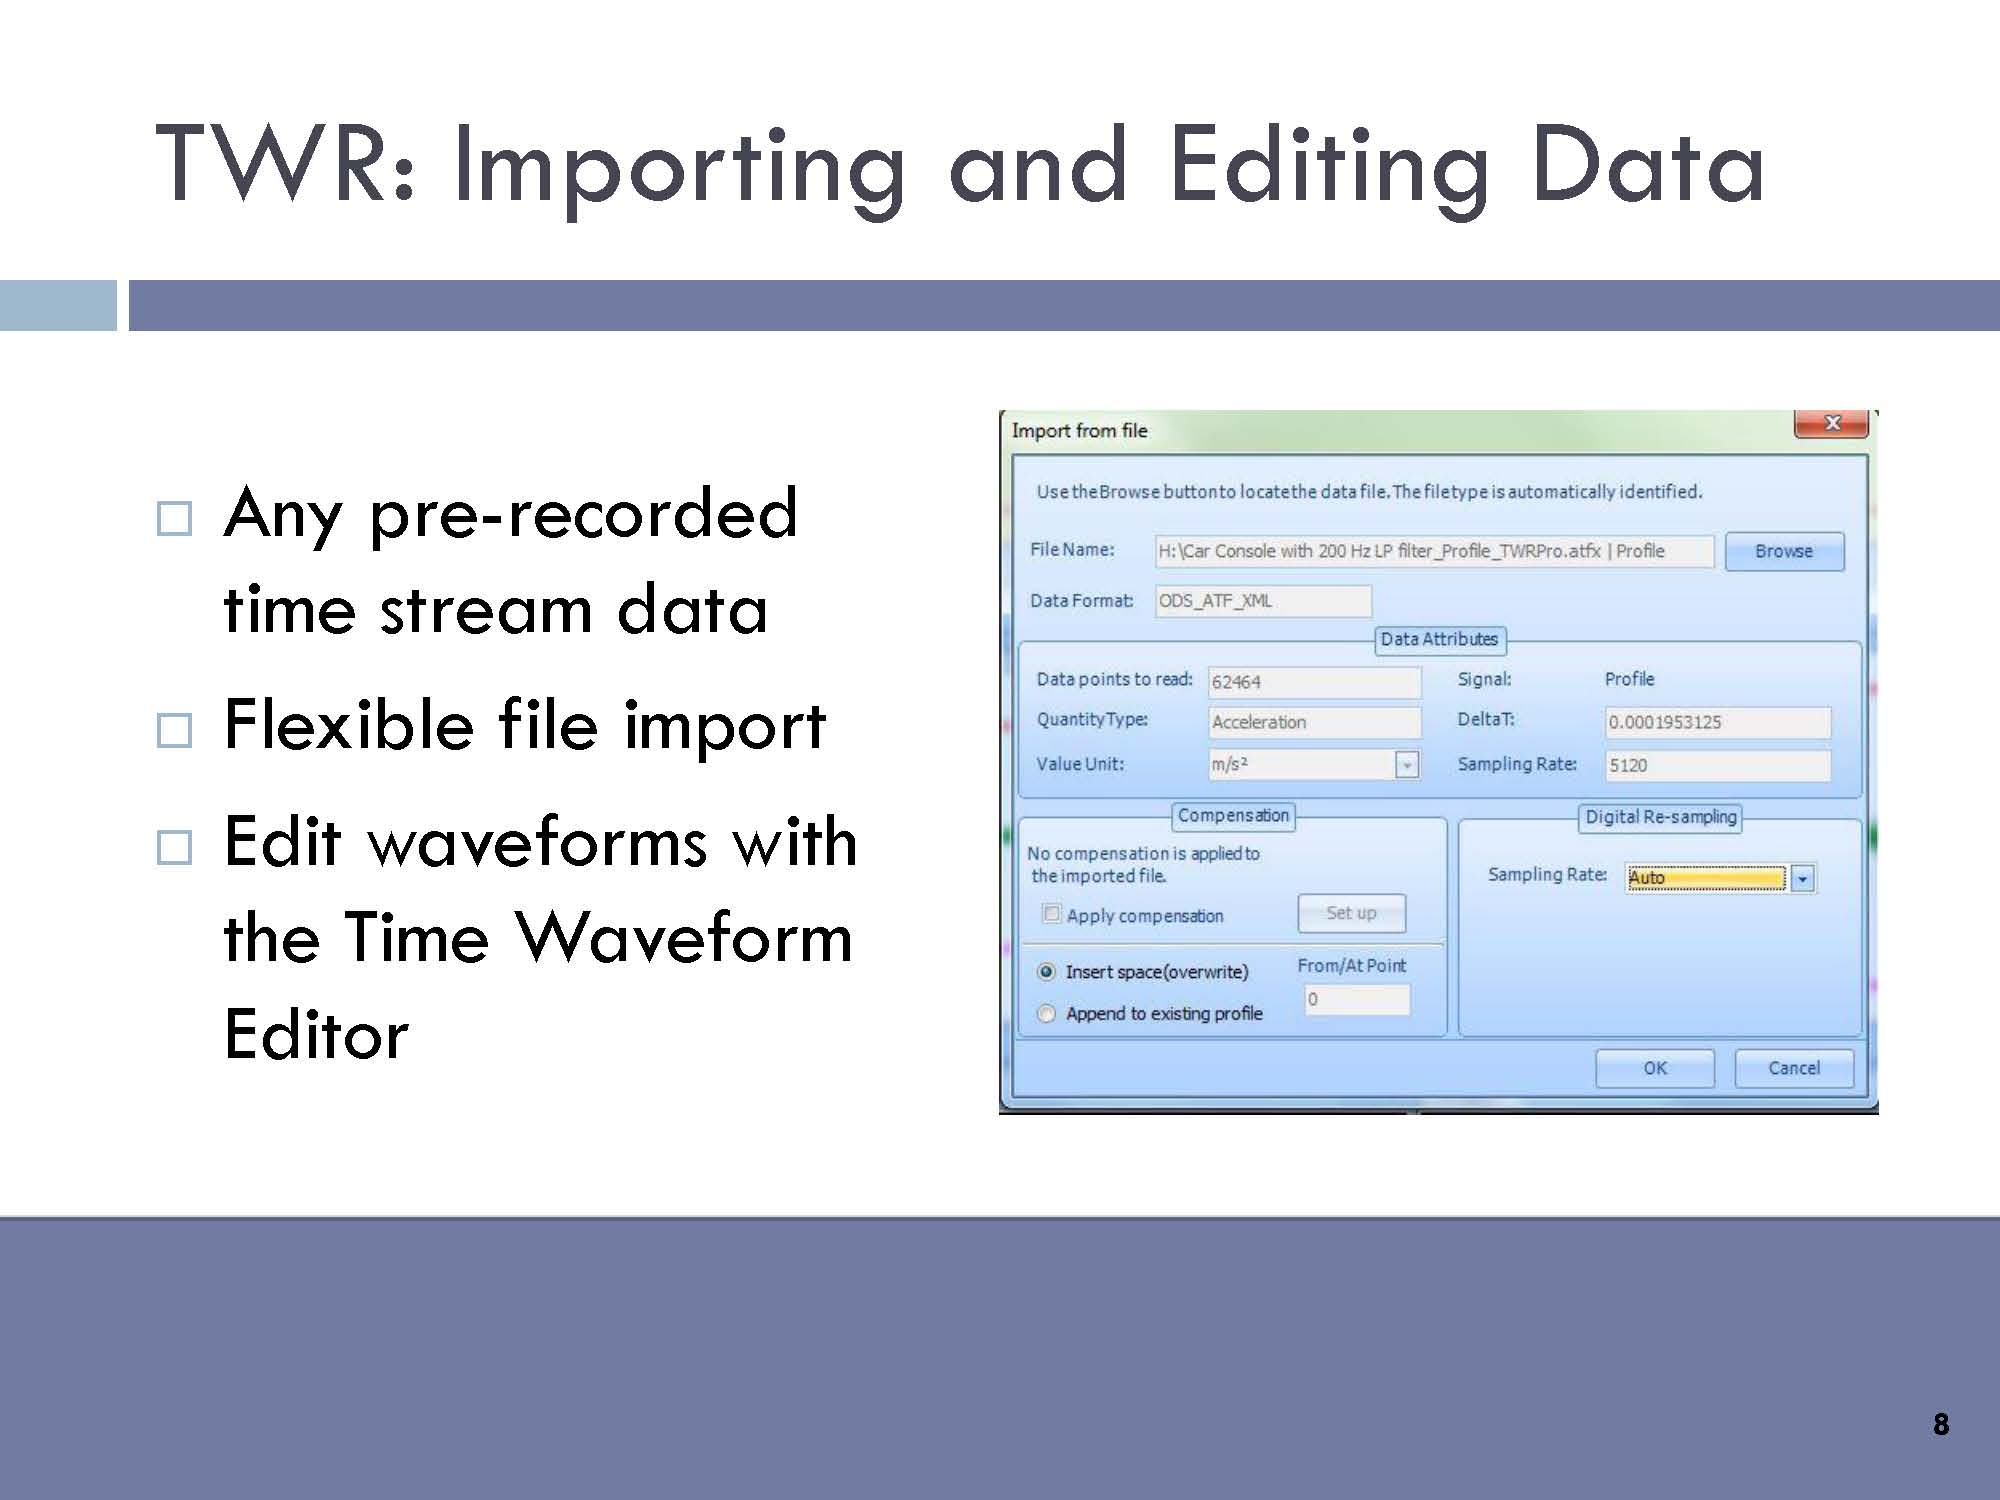 TWR - Importing and editing data: Any pre-recorded time stream data, flexible file import, and edit waveforms with the Time Waveform Editor.